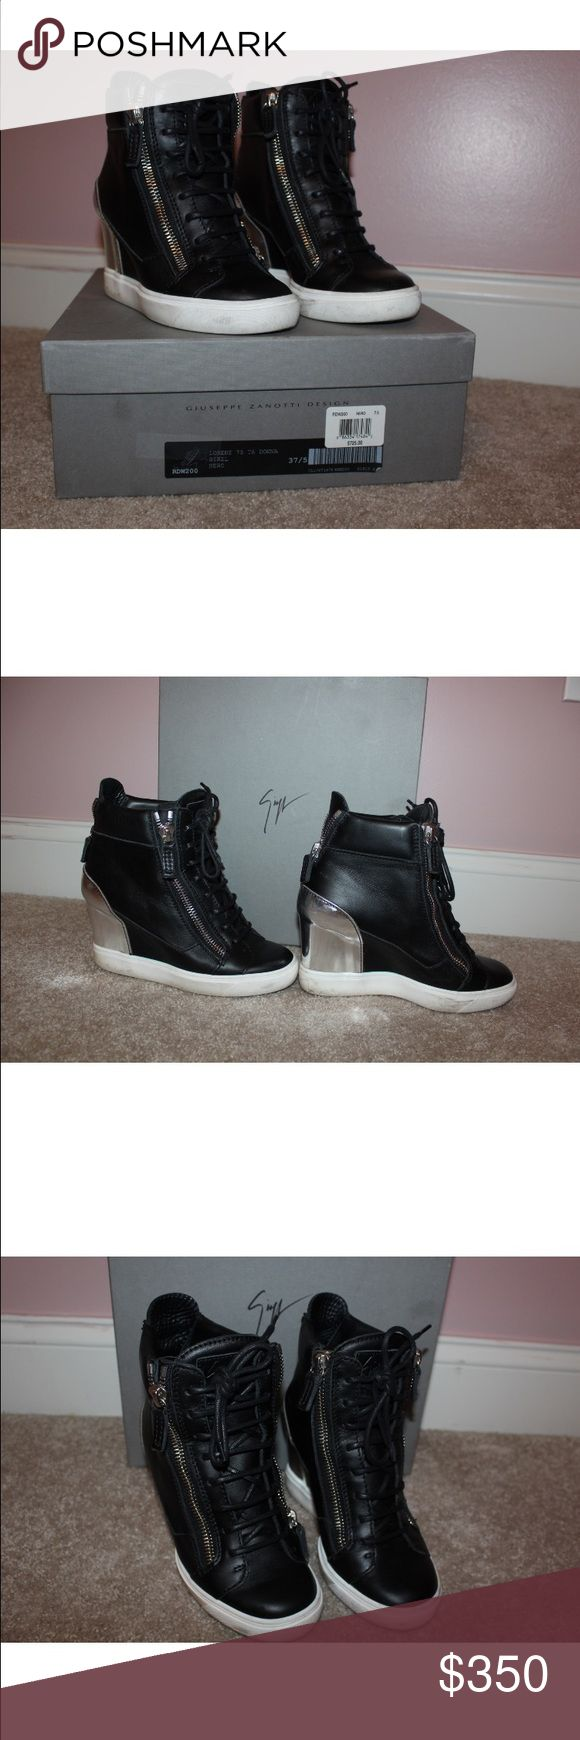 Giuseppe Zanotti  Wedge sneaker 37.5 I have these 100% authentic with the box Giuseppe Zanotti sneakers size 37.5 great condition!! No trades .... Giuseppe Zanotti Shoes Platforms